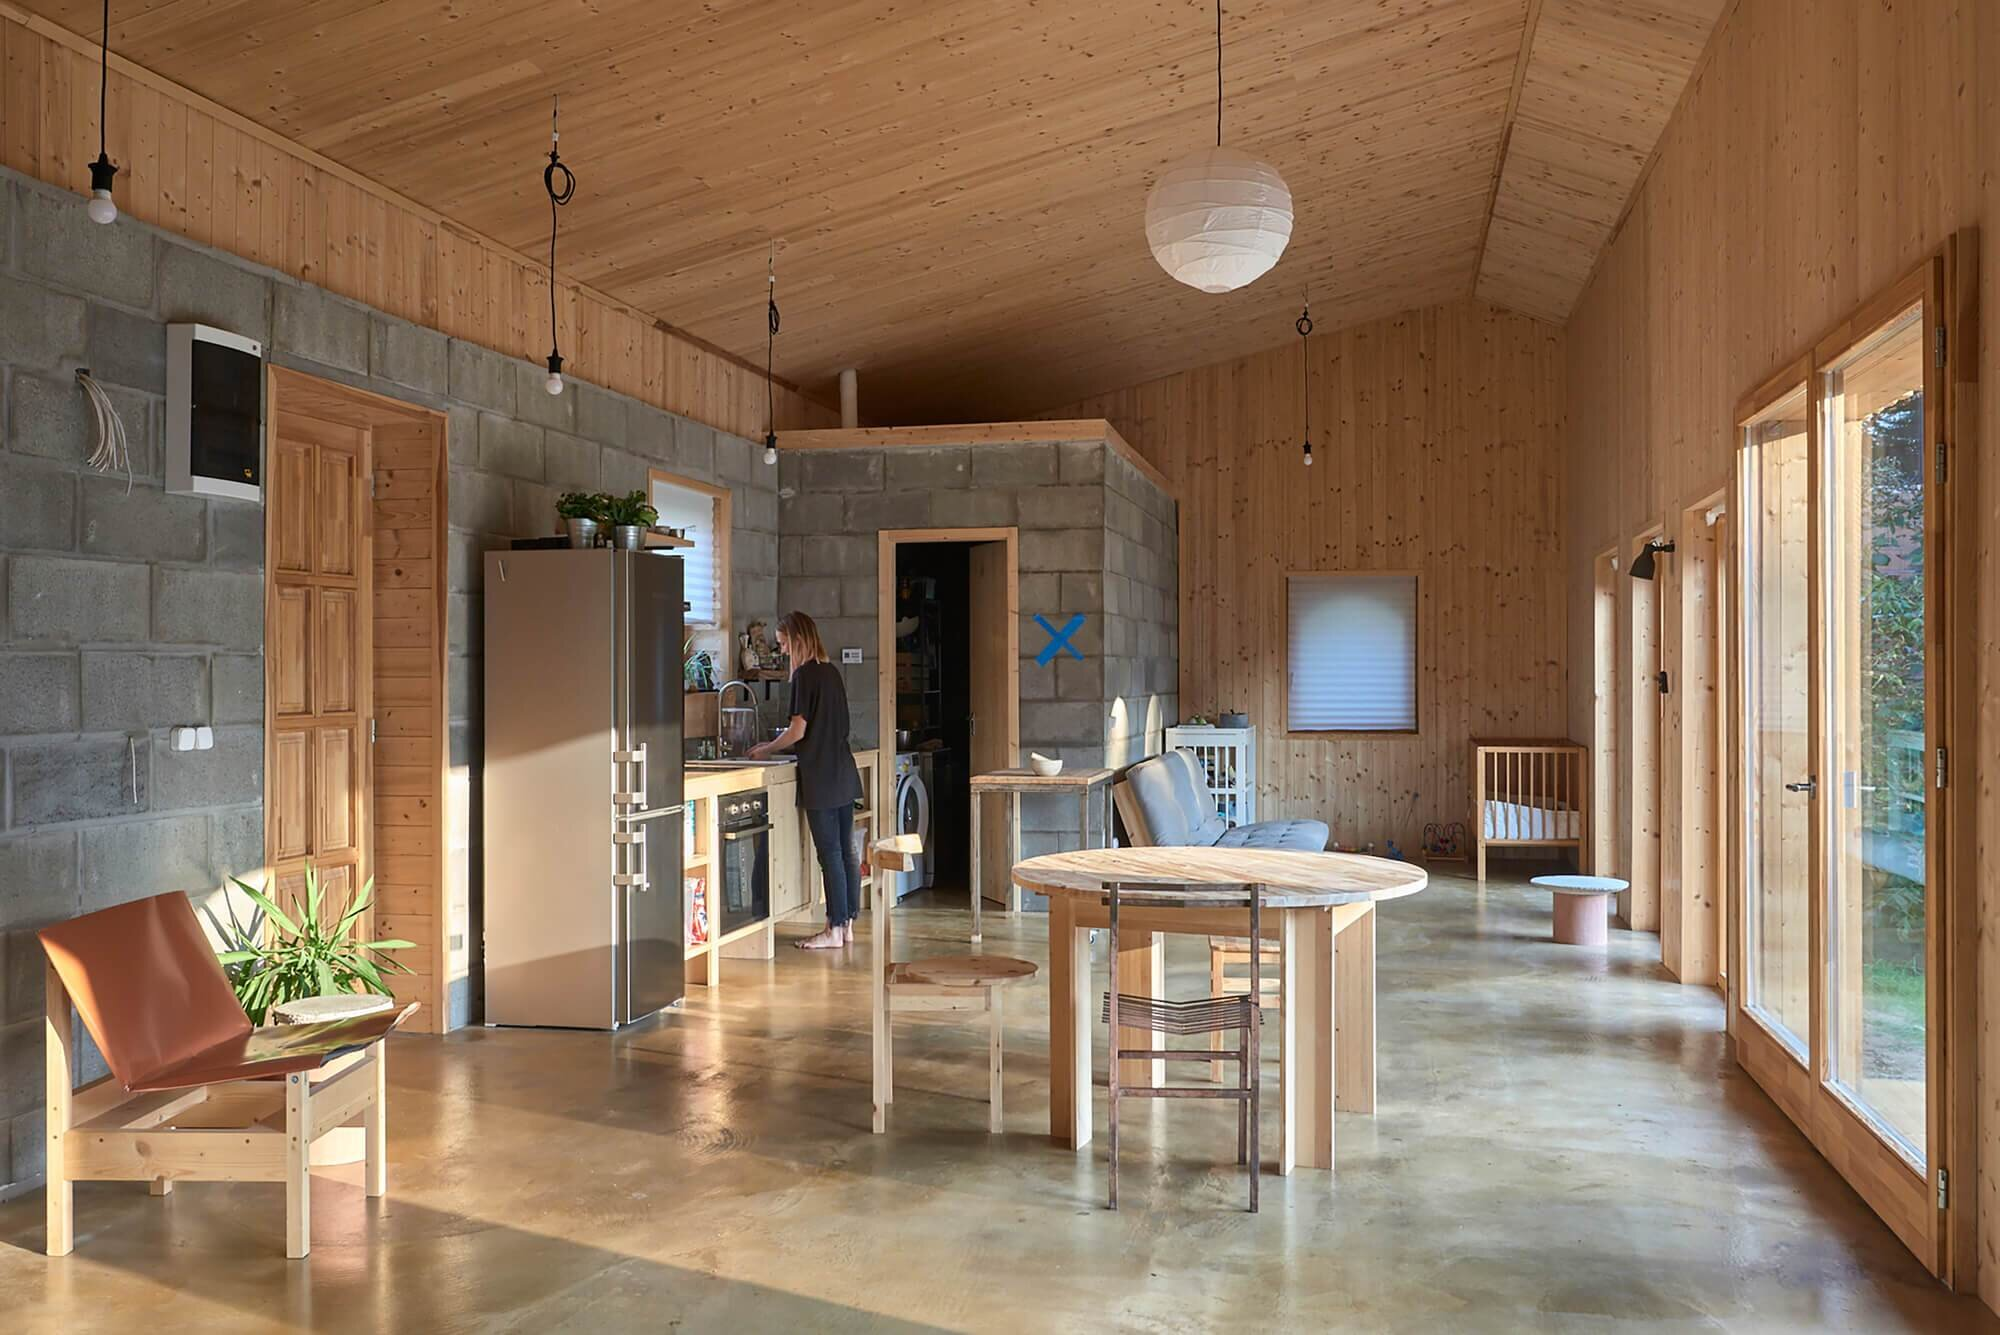 House-for-a-Young-Family-Architecture-Uncomfortable-Workshop-Hungary-11